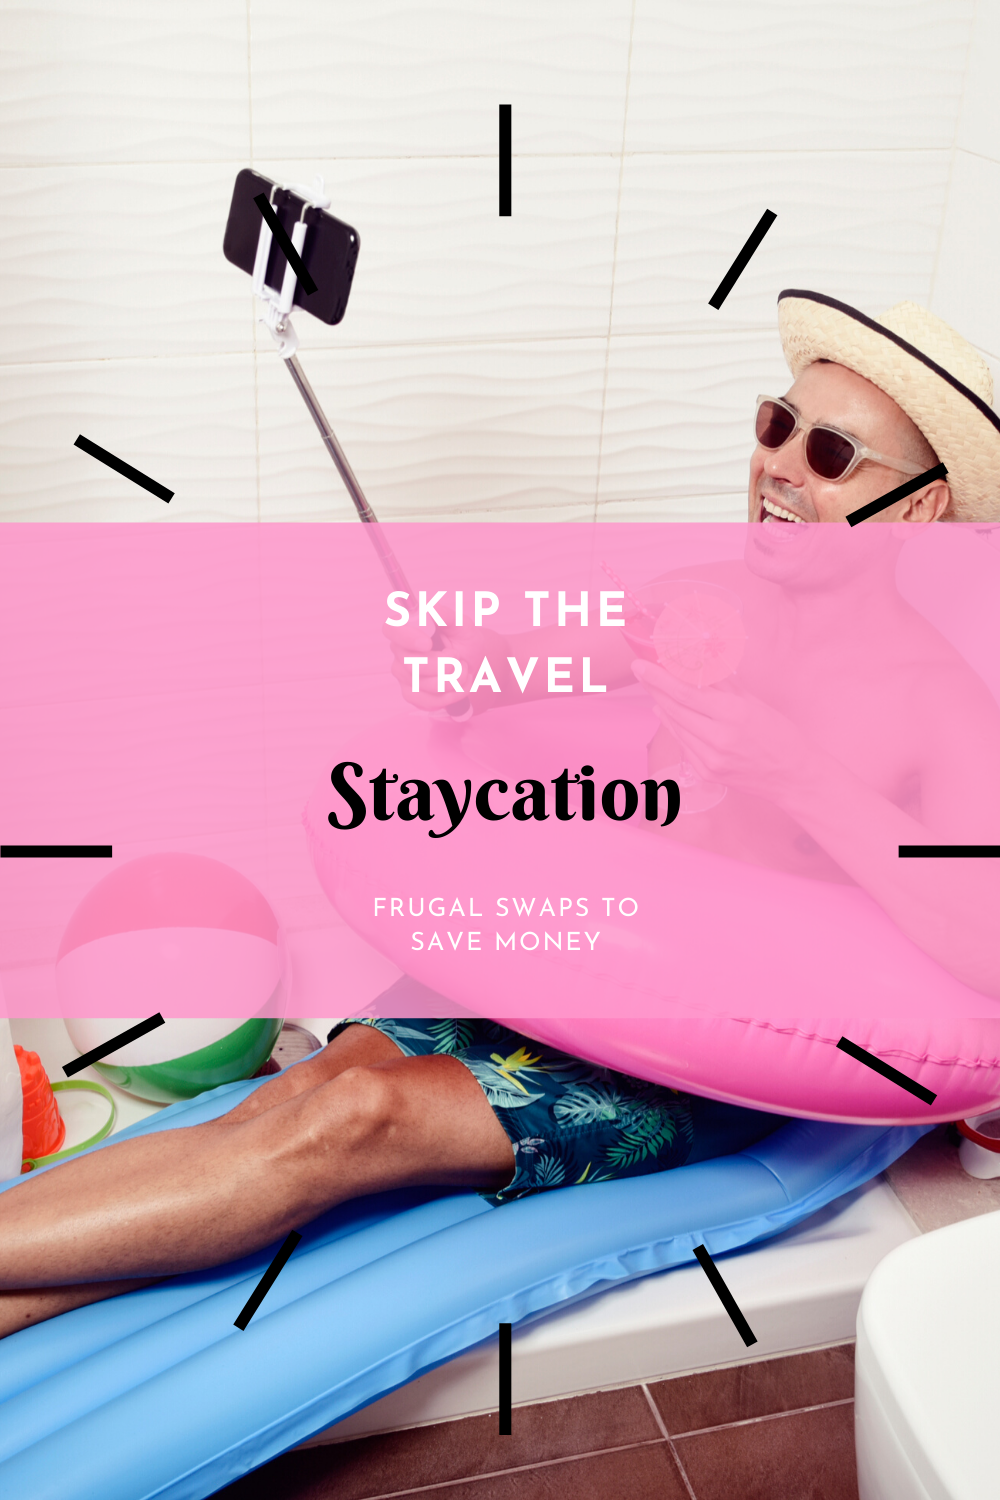 3 Frugal Swaps to Do on Your Next Staycation